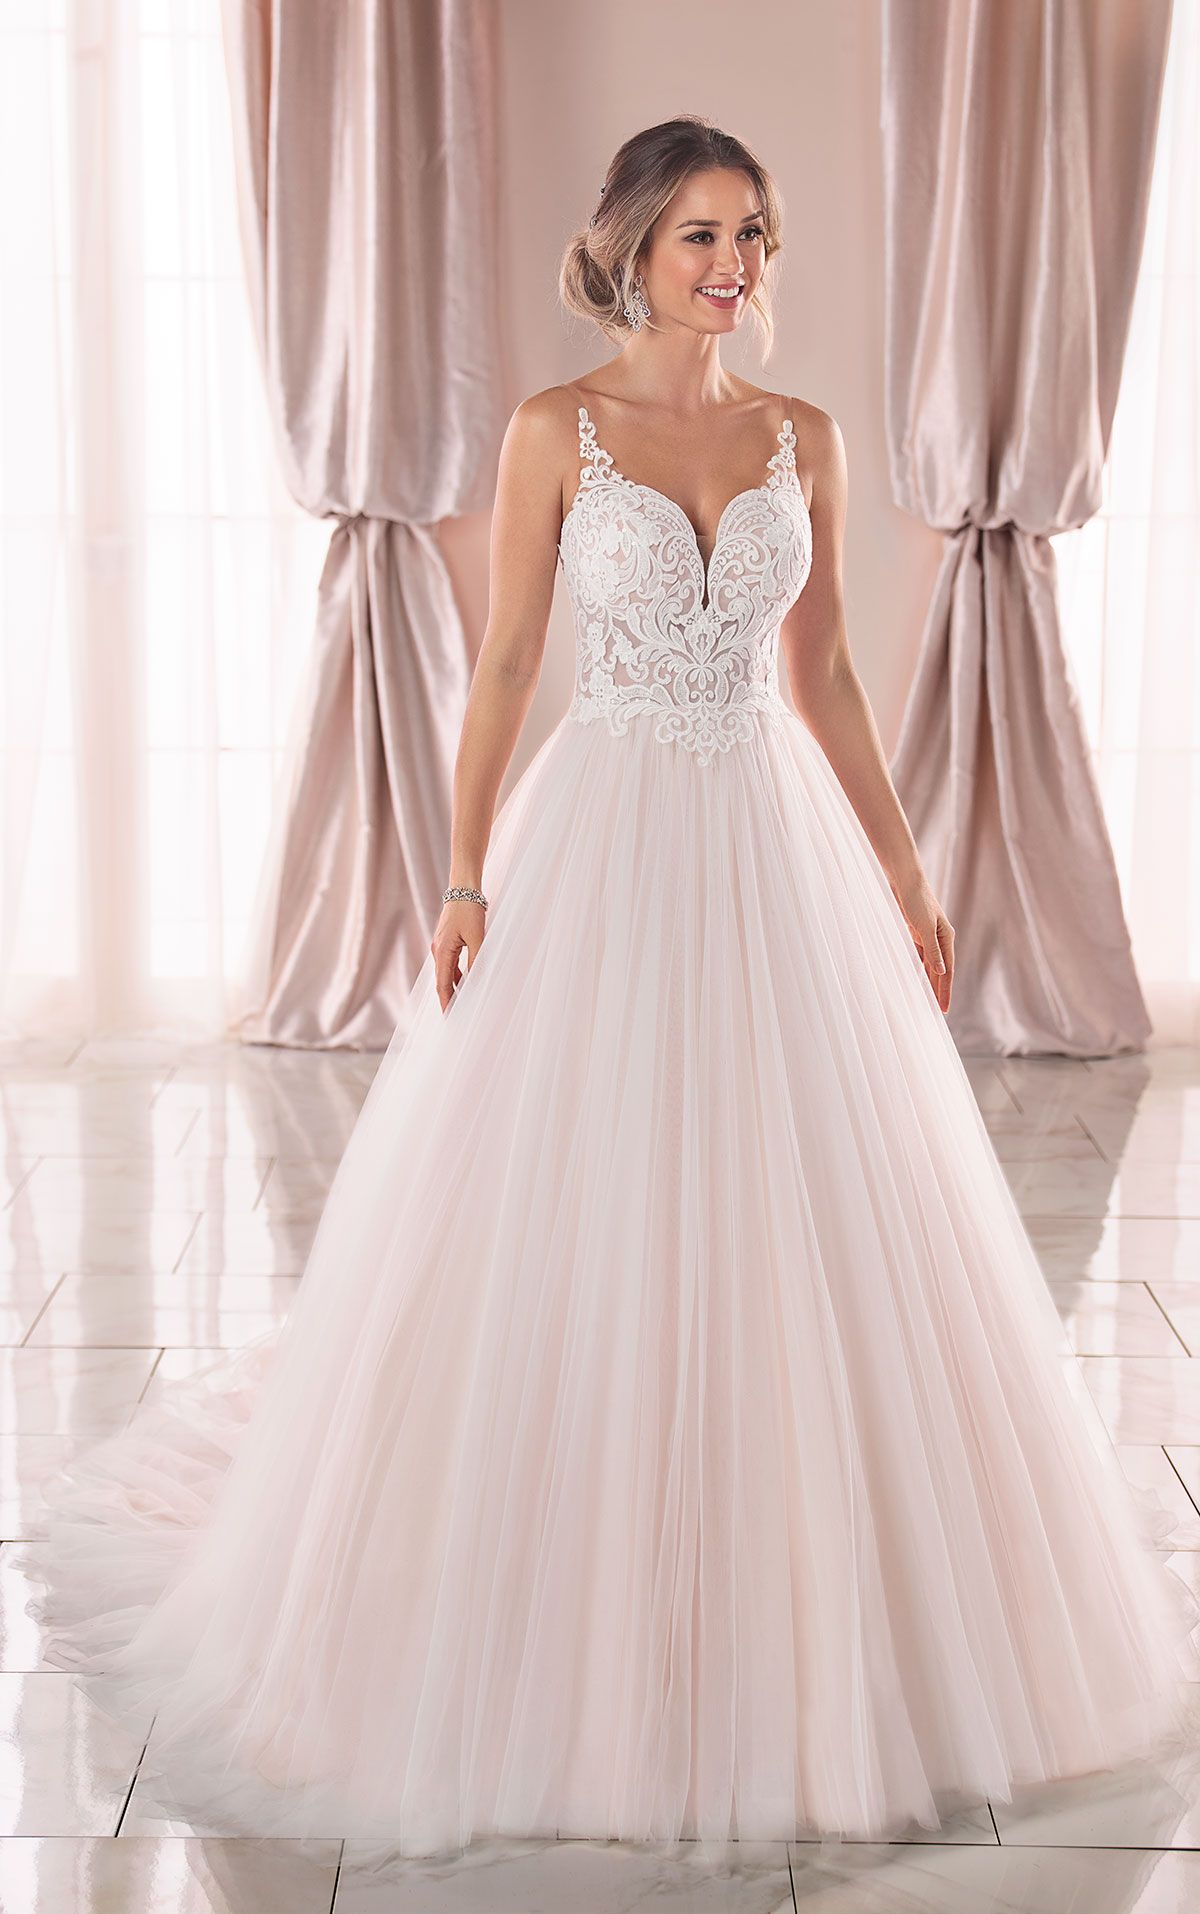 Soft Ballgown Wedding Dress With Romantic Shimmer Stella York Wedding Dresses Ball Gowns Wedding Wedding Dresses Perth Ball Gown Wedding Dress